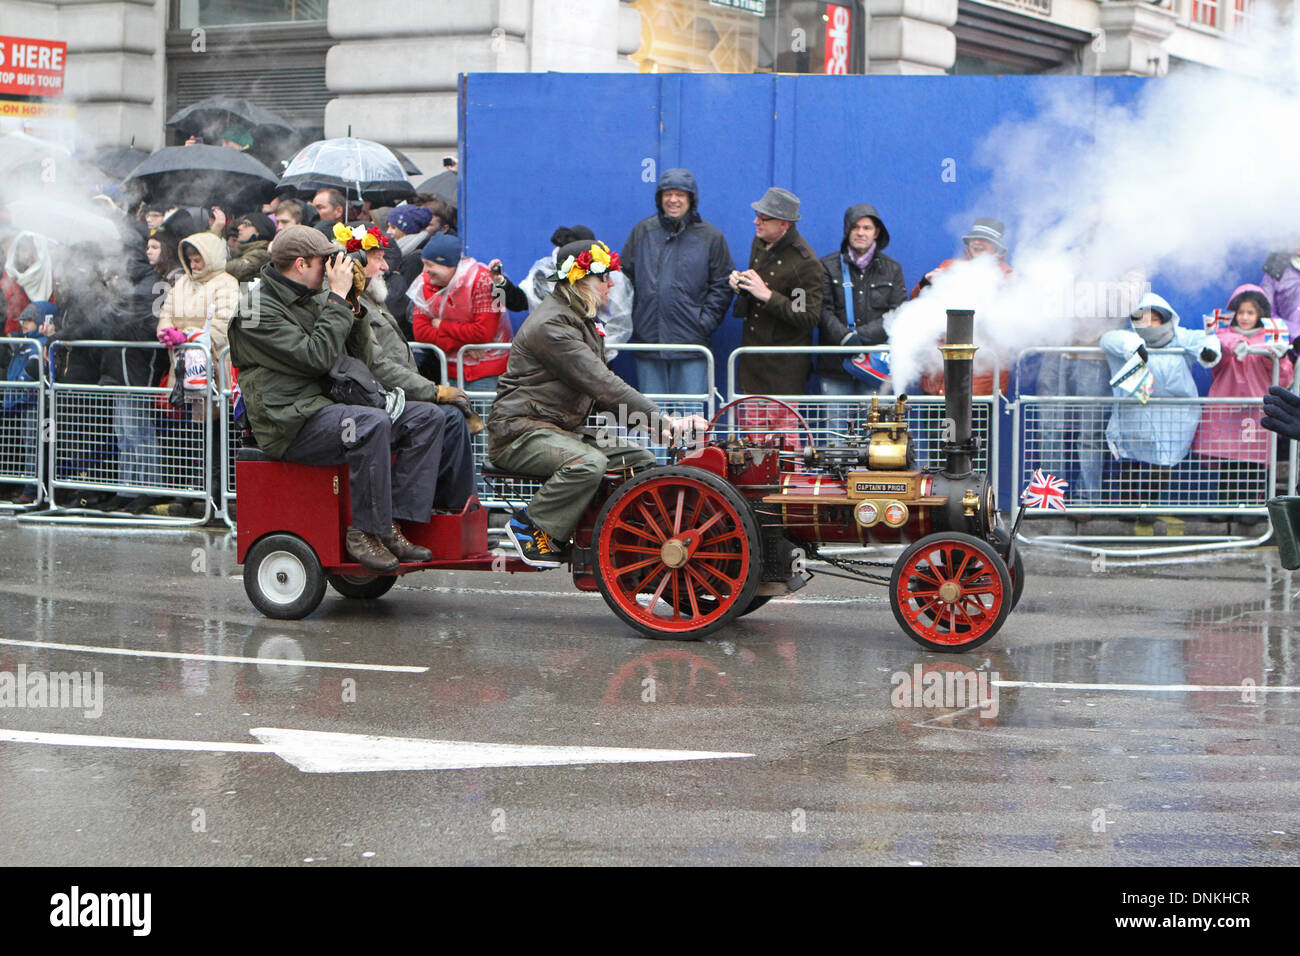 London,UK,1st January 2014,A miniature Steam traction engine at the London's New Year's Day Parade 2014 Credit: Keith Larby/Alamy Live News - Stock Image